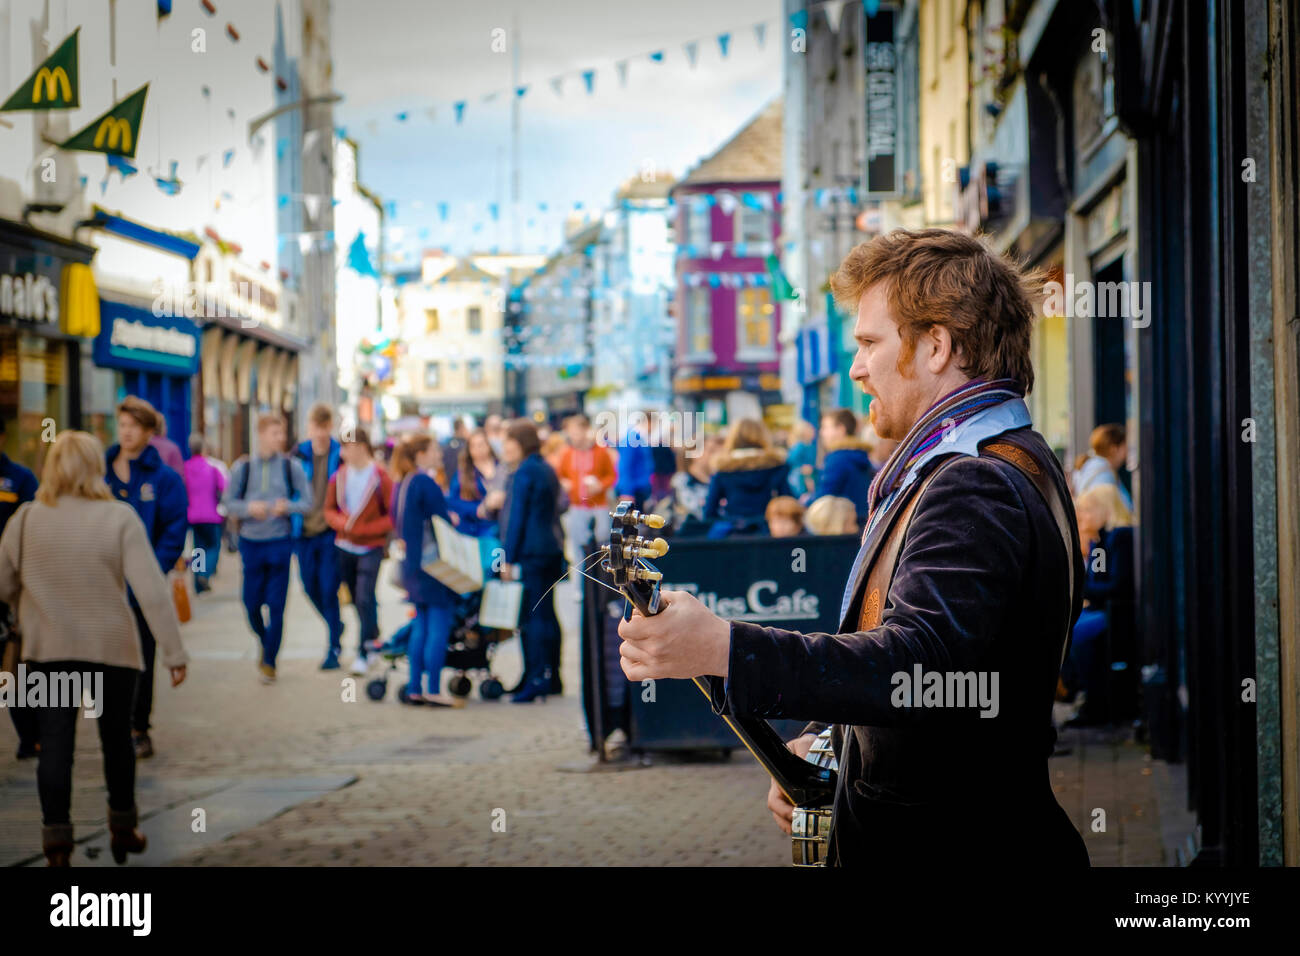 Busker performing on the High Street in Galway, Ireland - Stock Image